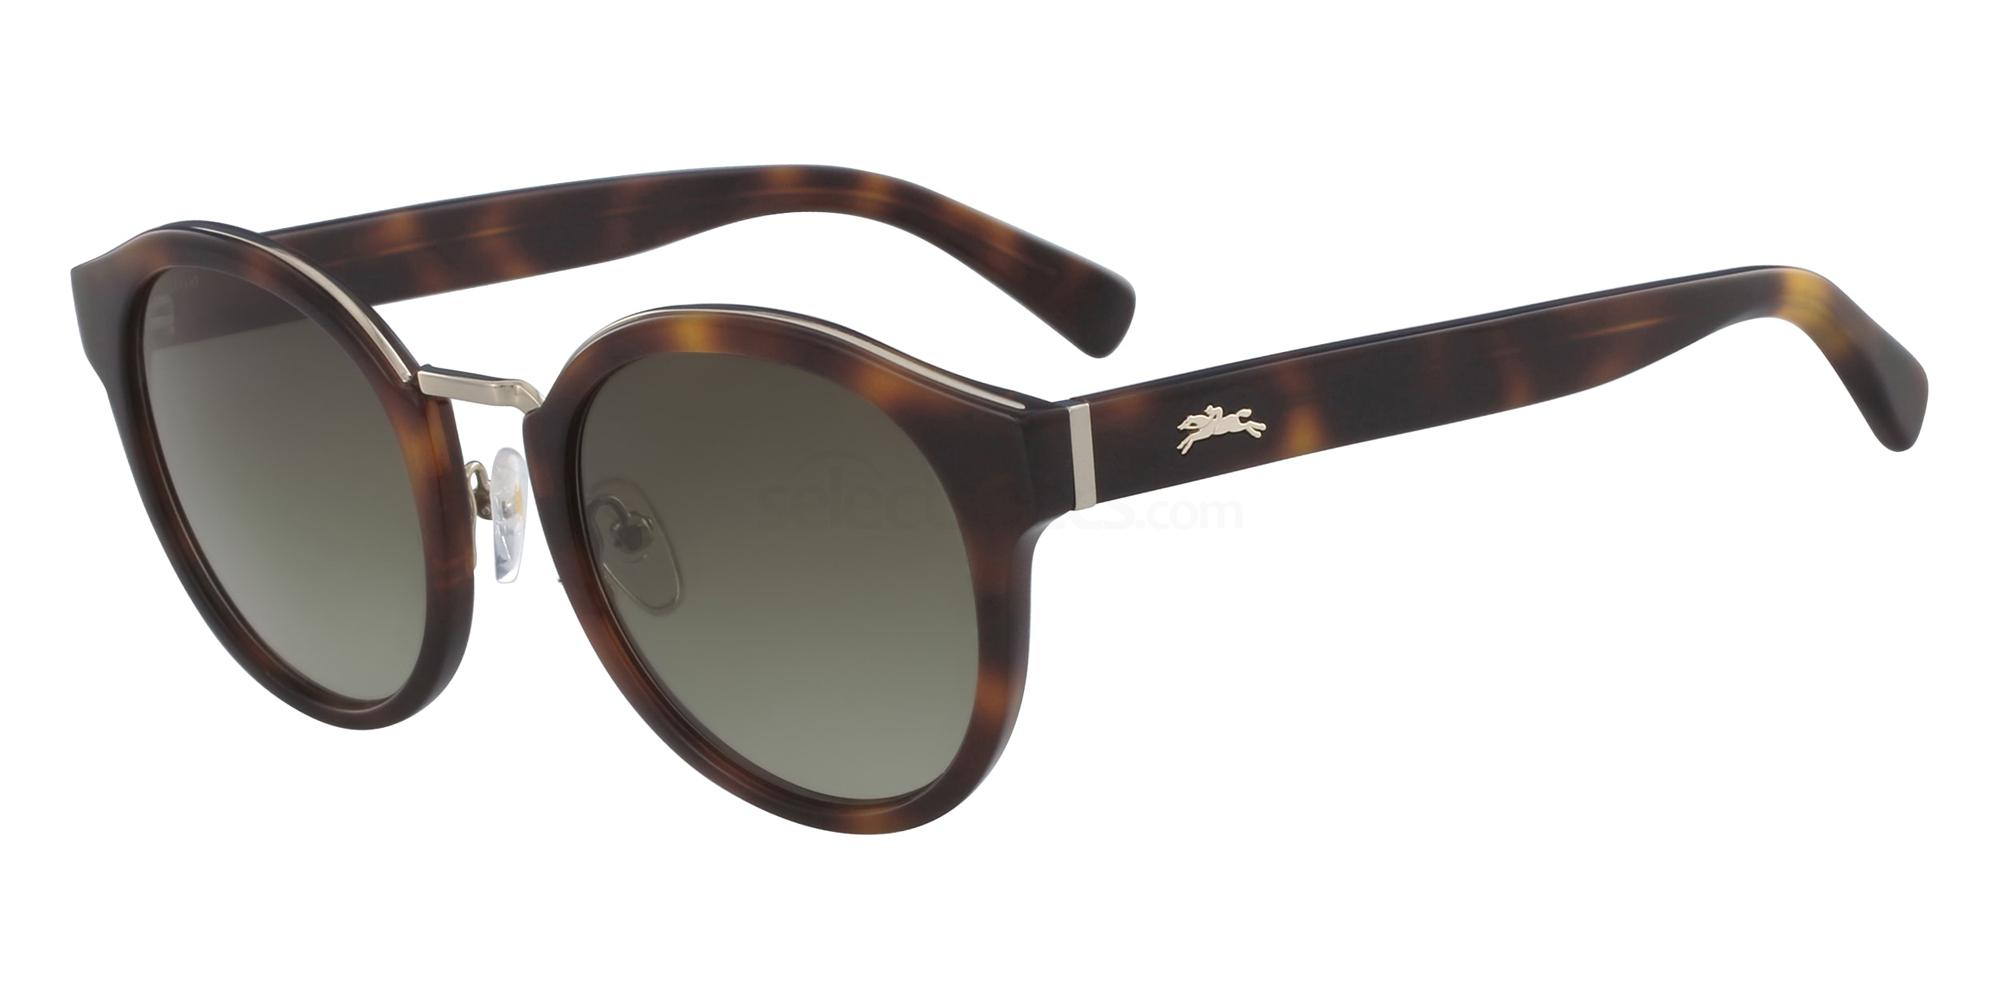 214 LO603S Sunglasses, LONGCHAMP